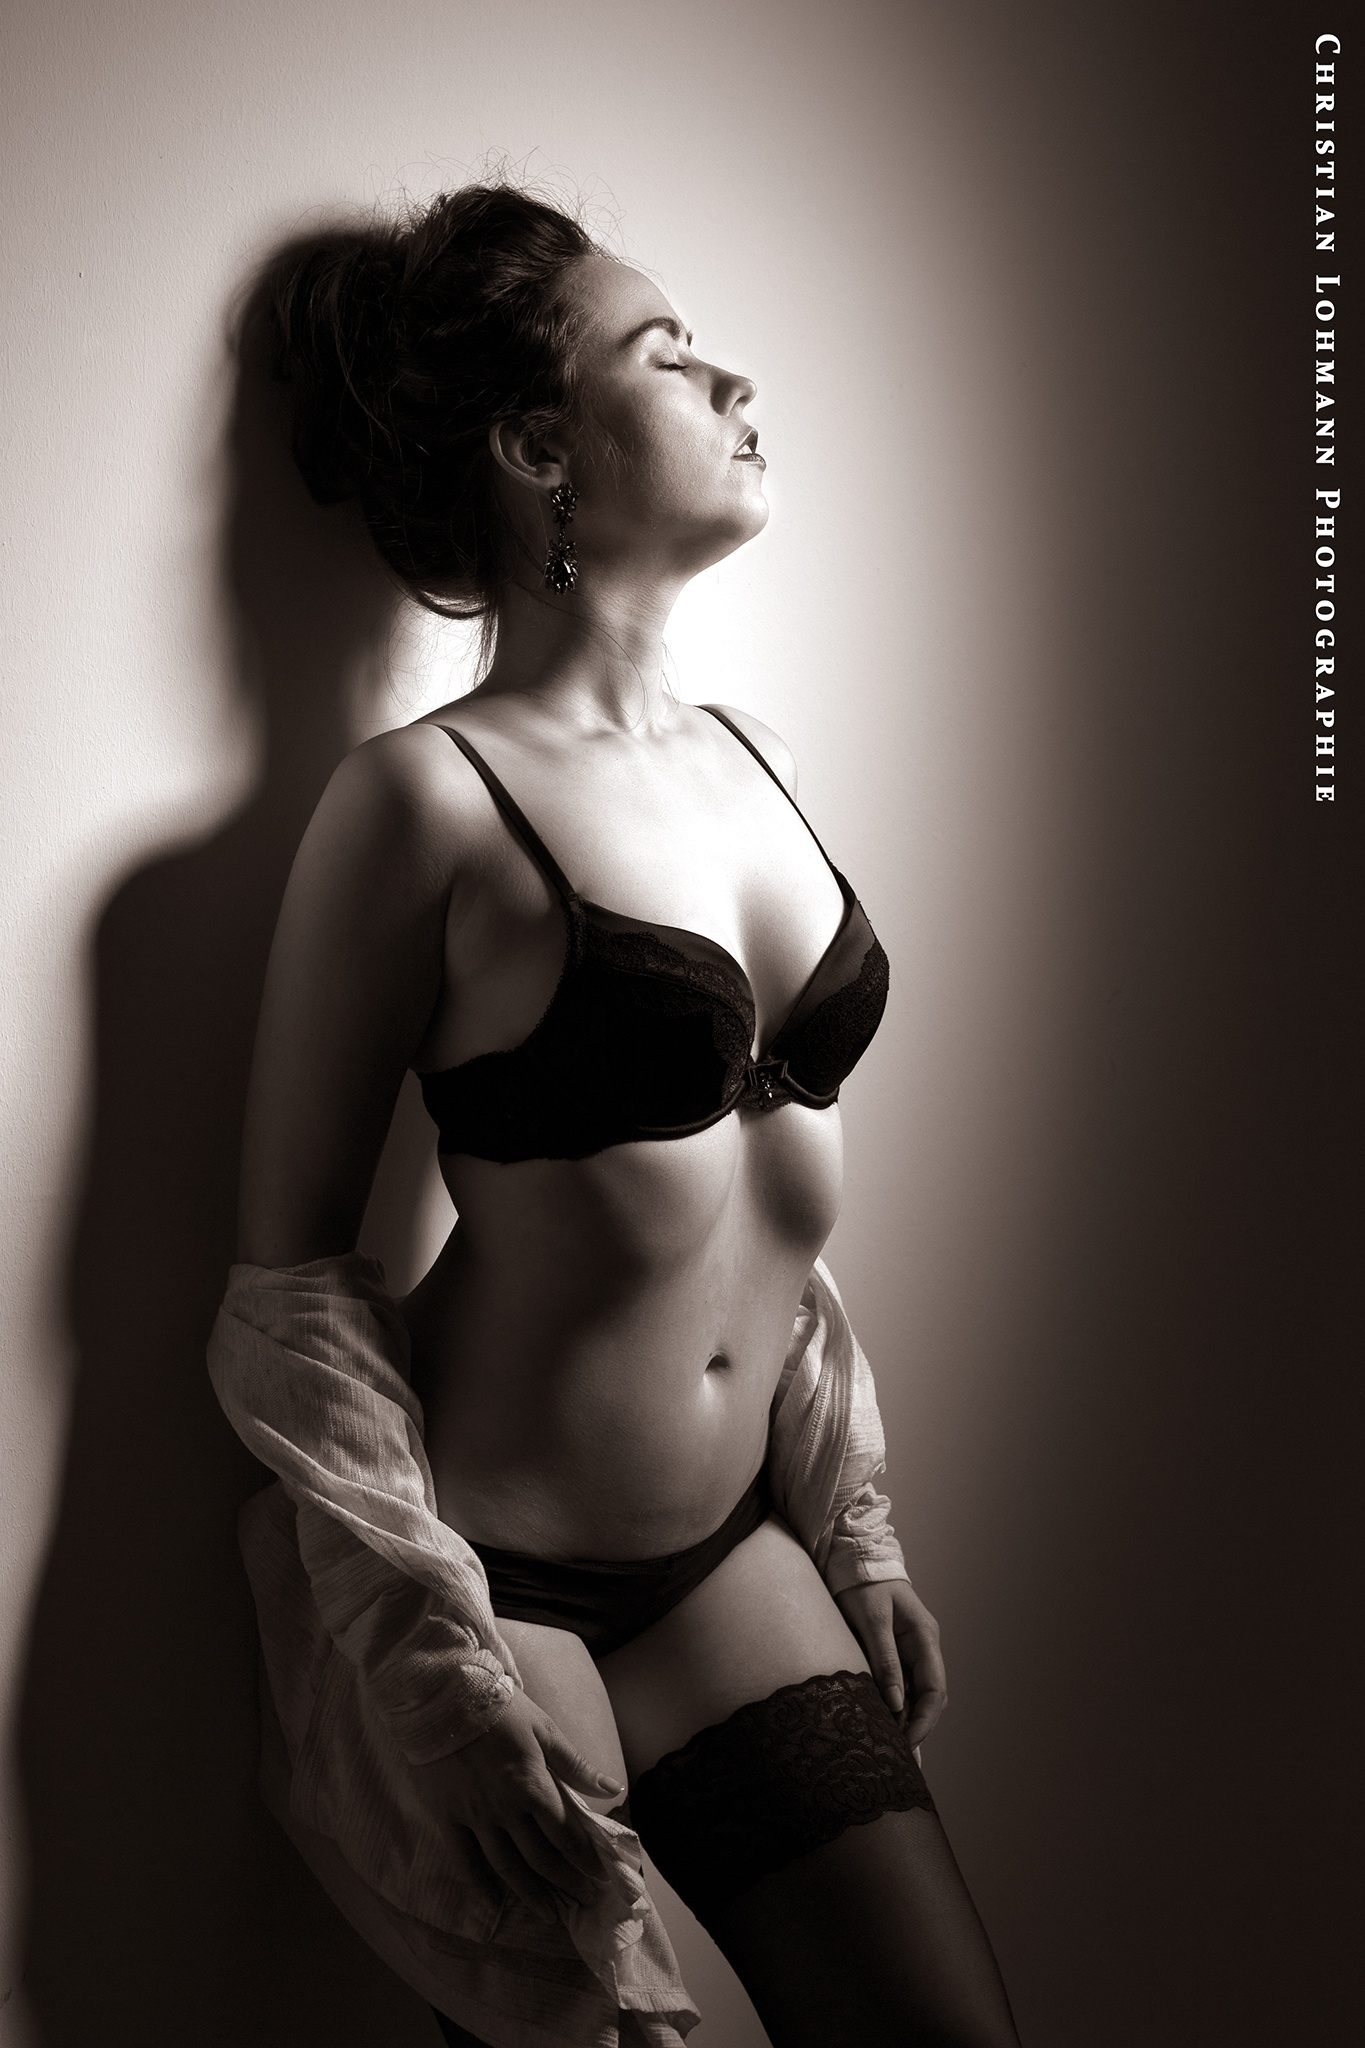 Miss Black and White by Christian Lohmann